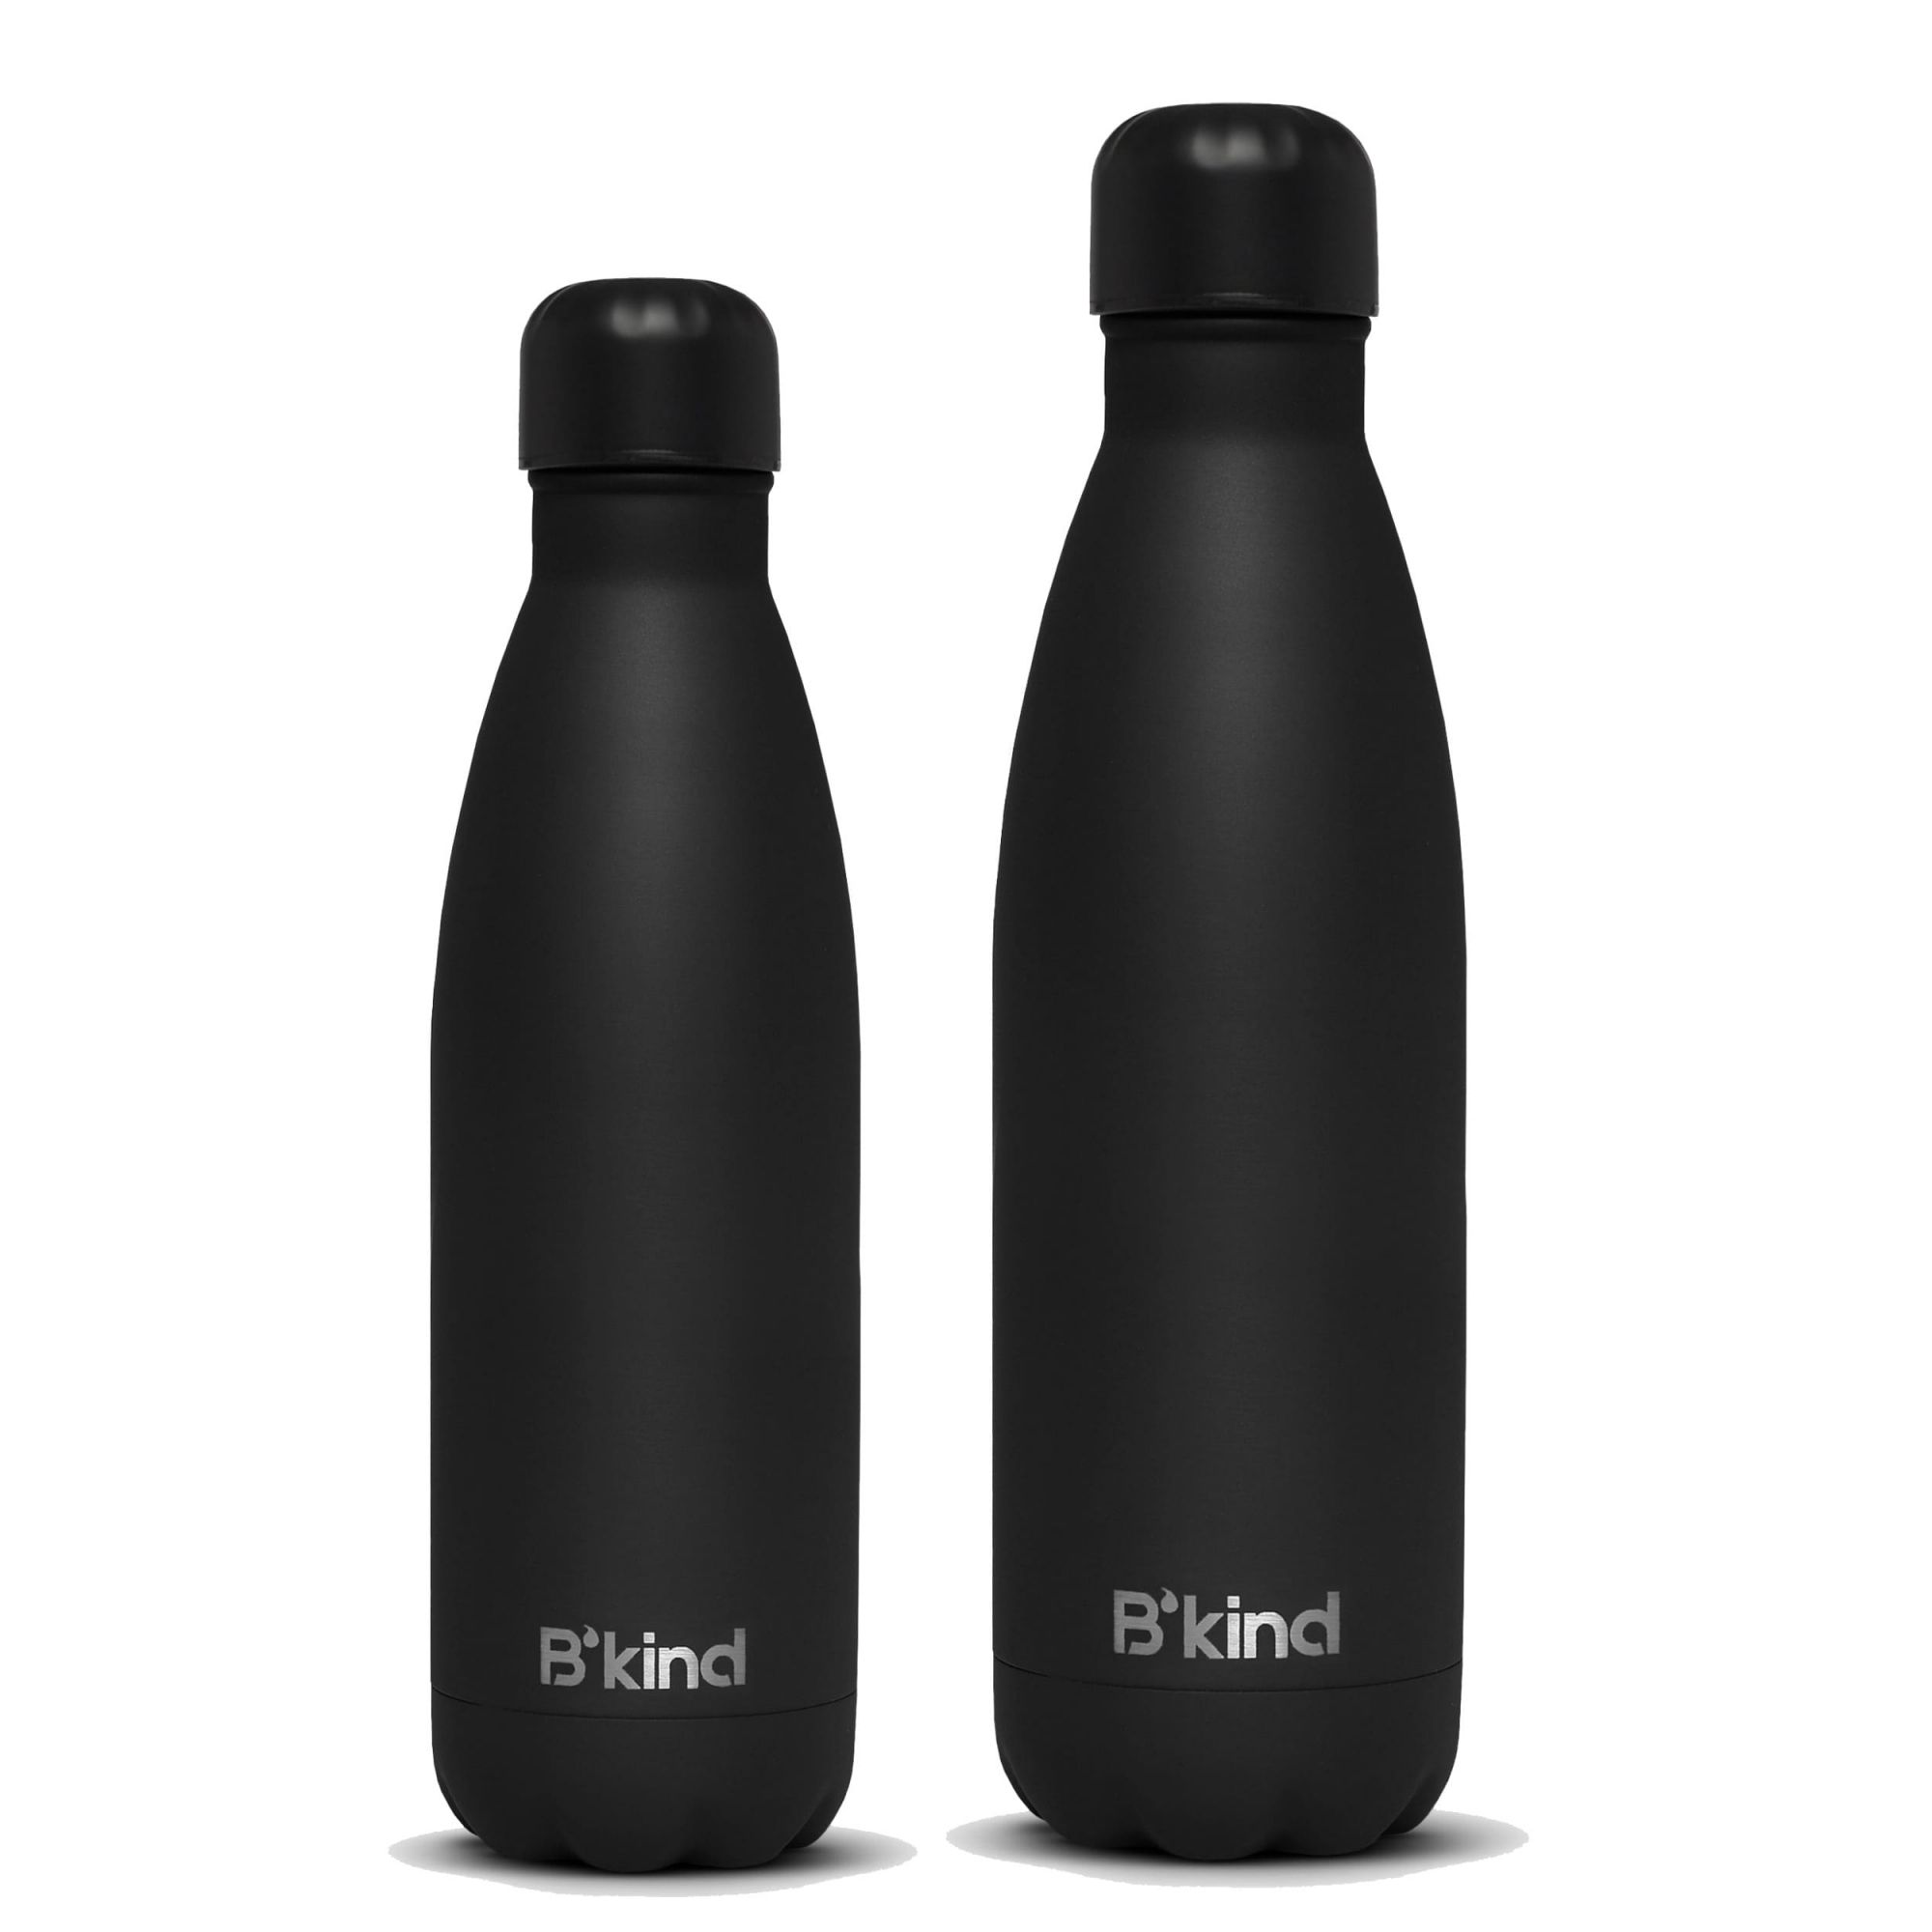 Garrafa Térmica B'kind All Black 500ml + 750ml